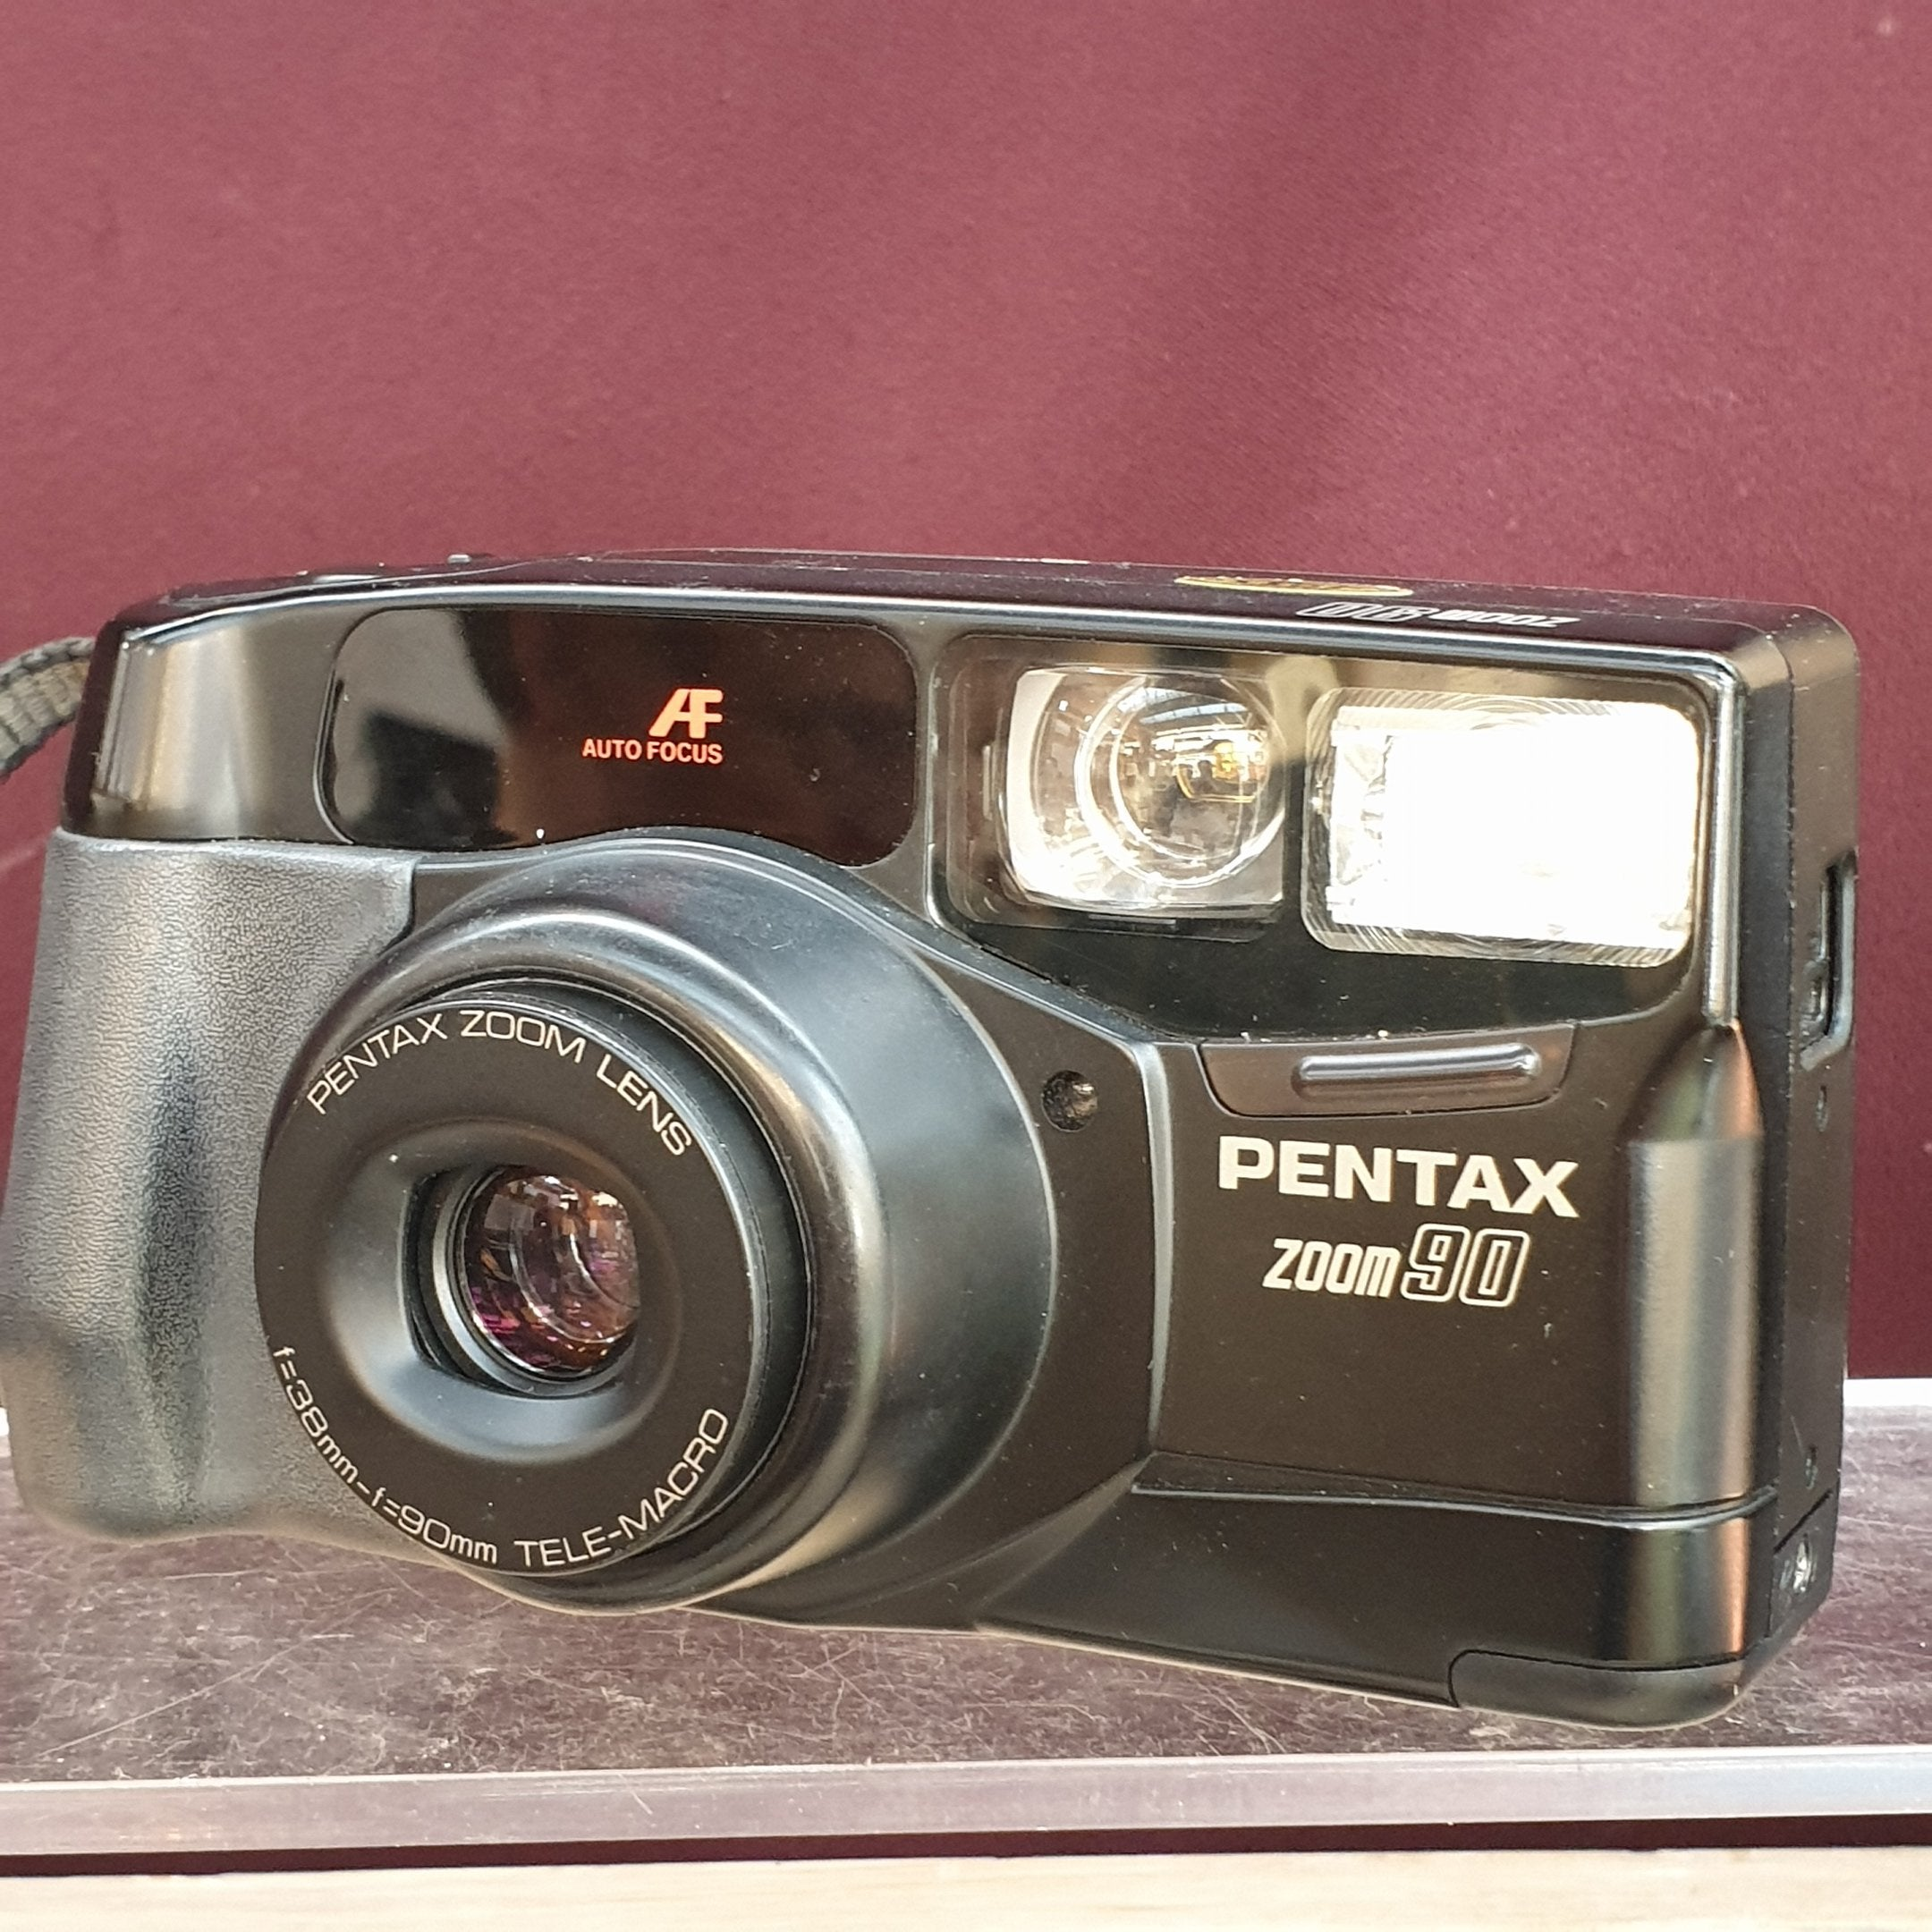 Pentax ZOOM 90  SN8305292 - Greenwich Cameras and Film